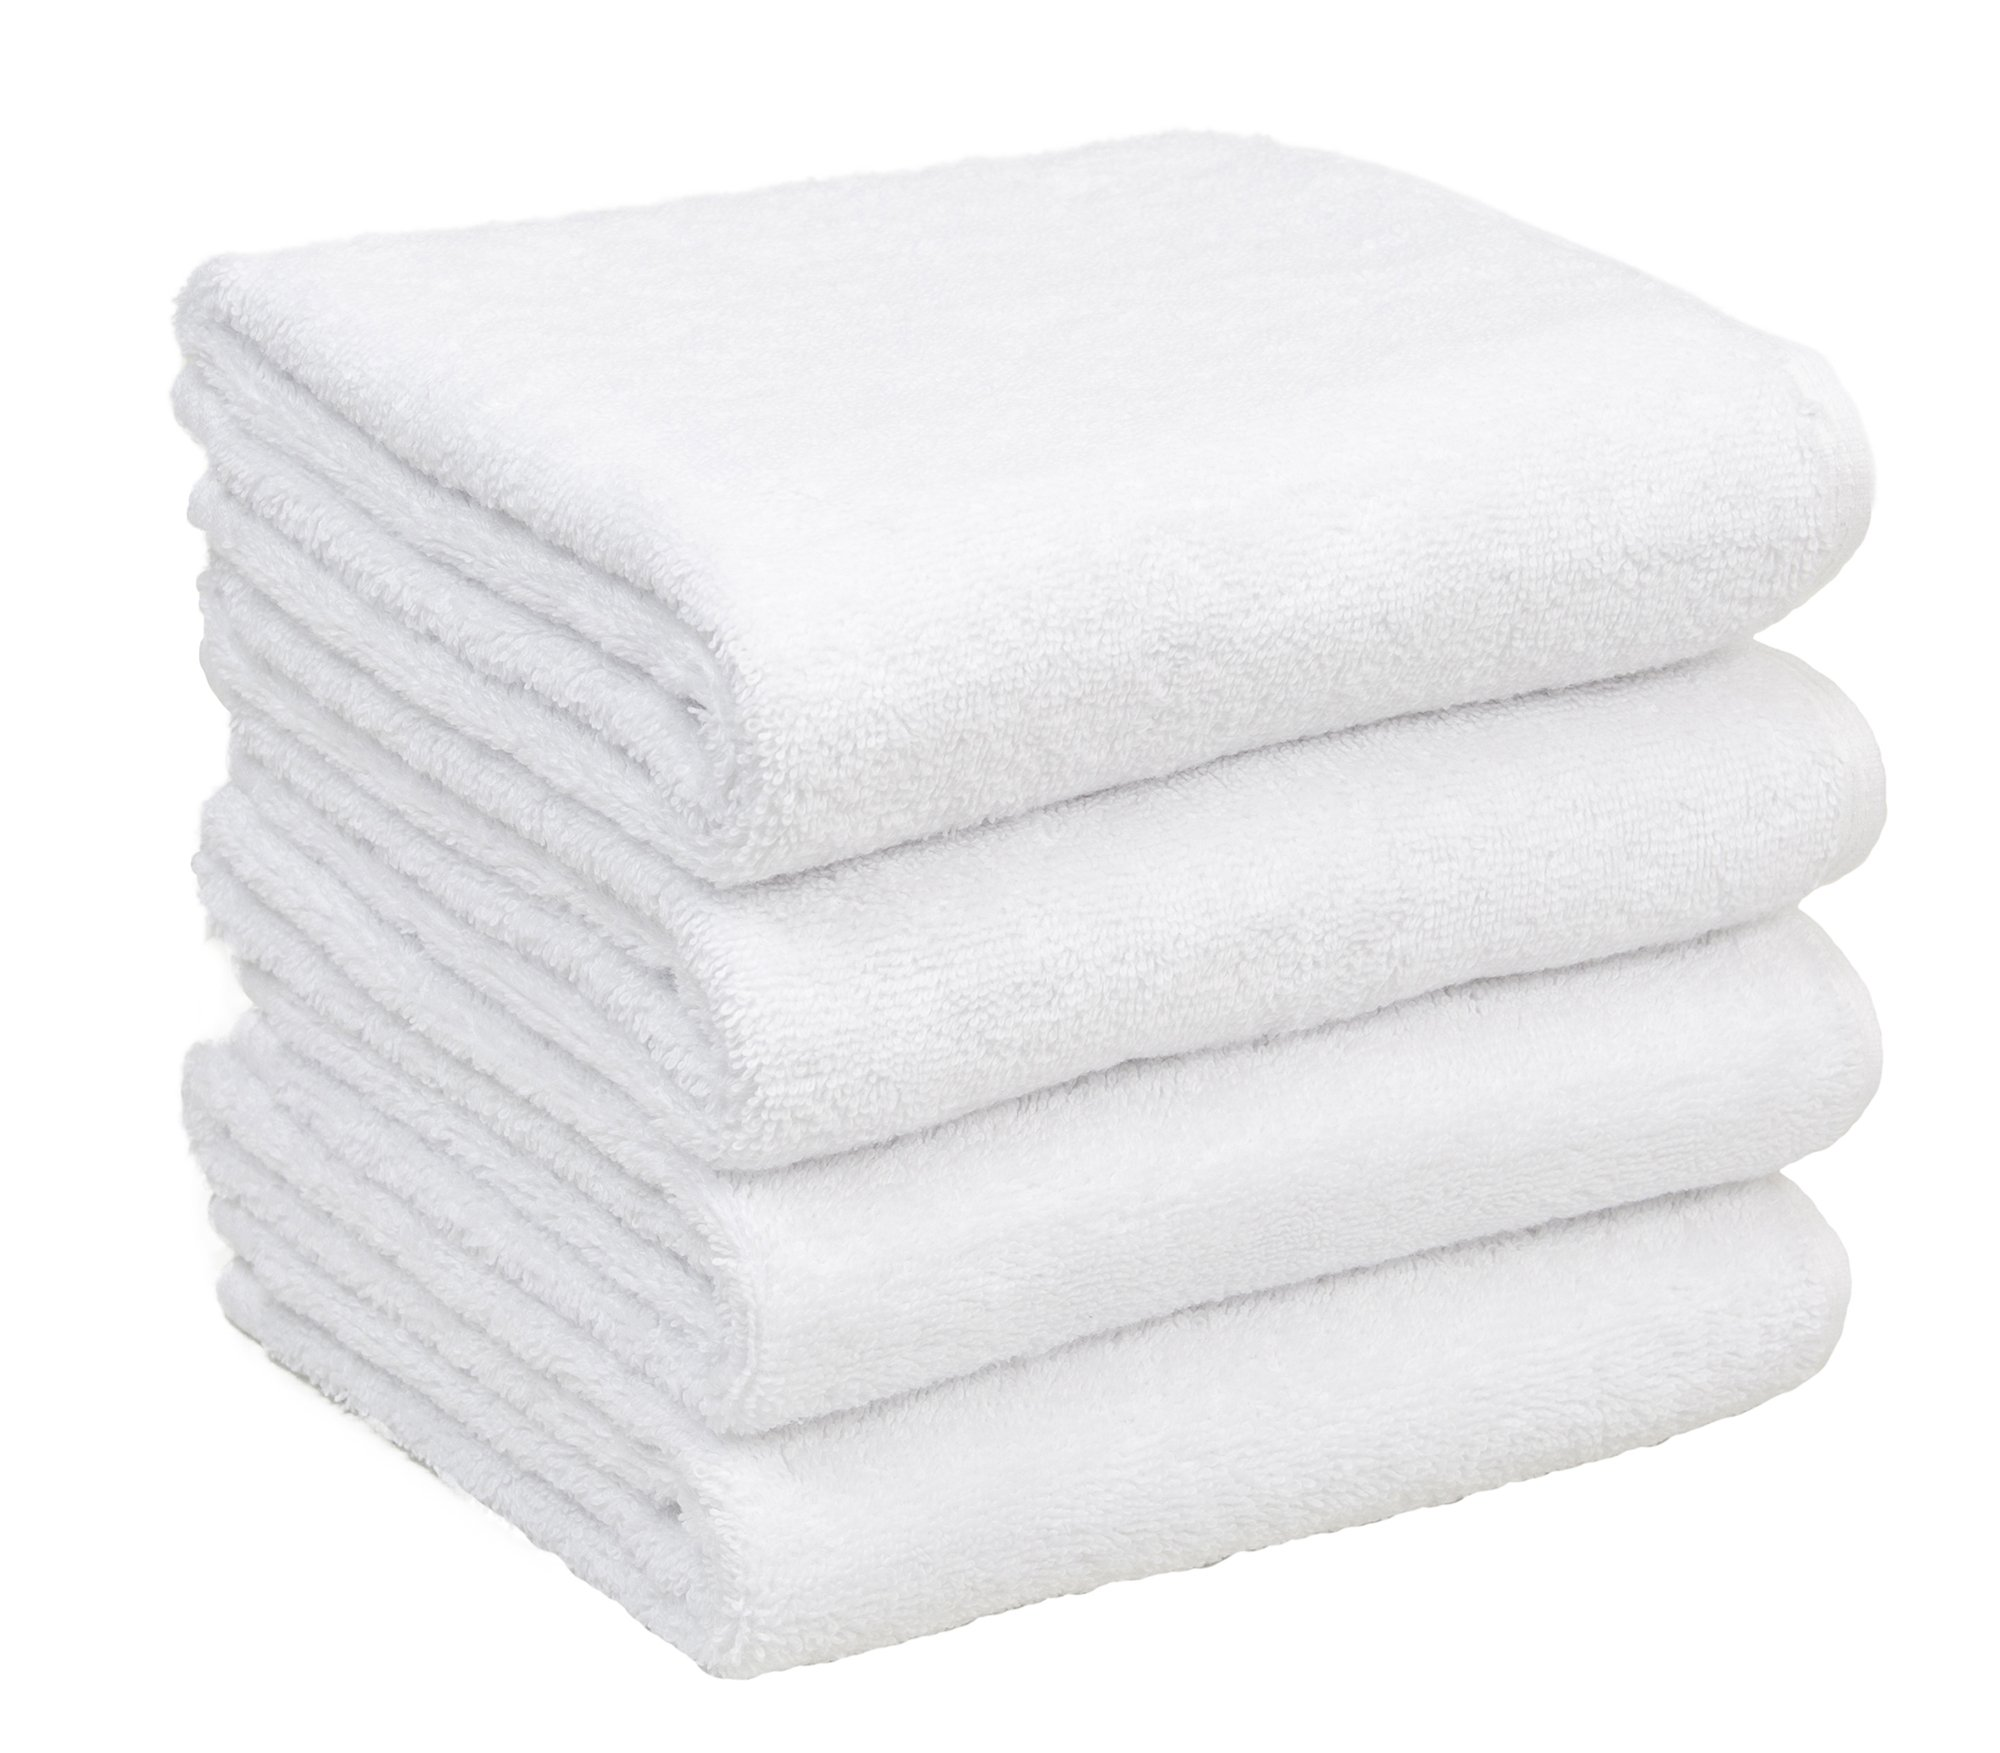 Home and Plan Quick Dry Premium 100% Turkish Cotton Hand Towels | 4-Piece Set, Decorative Hand Towels (16x27) - White (S7)